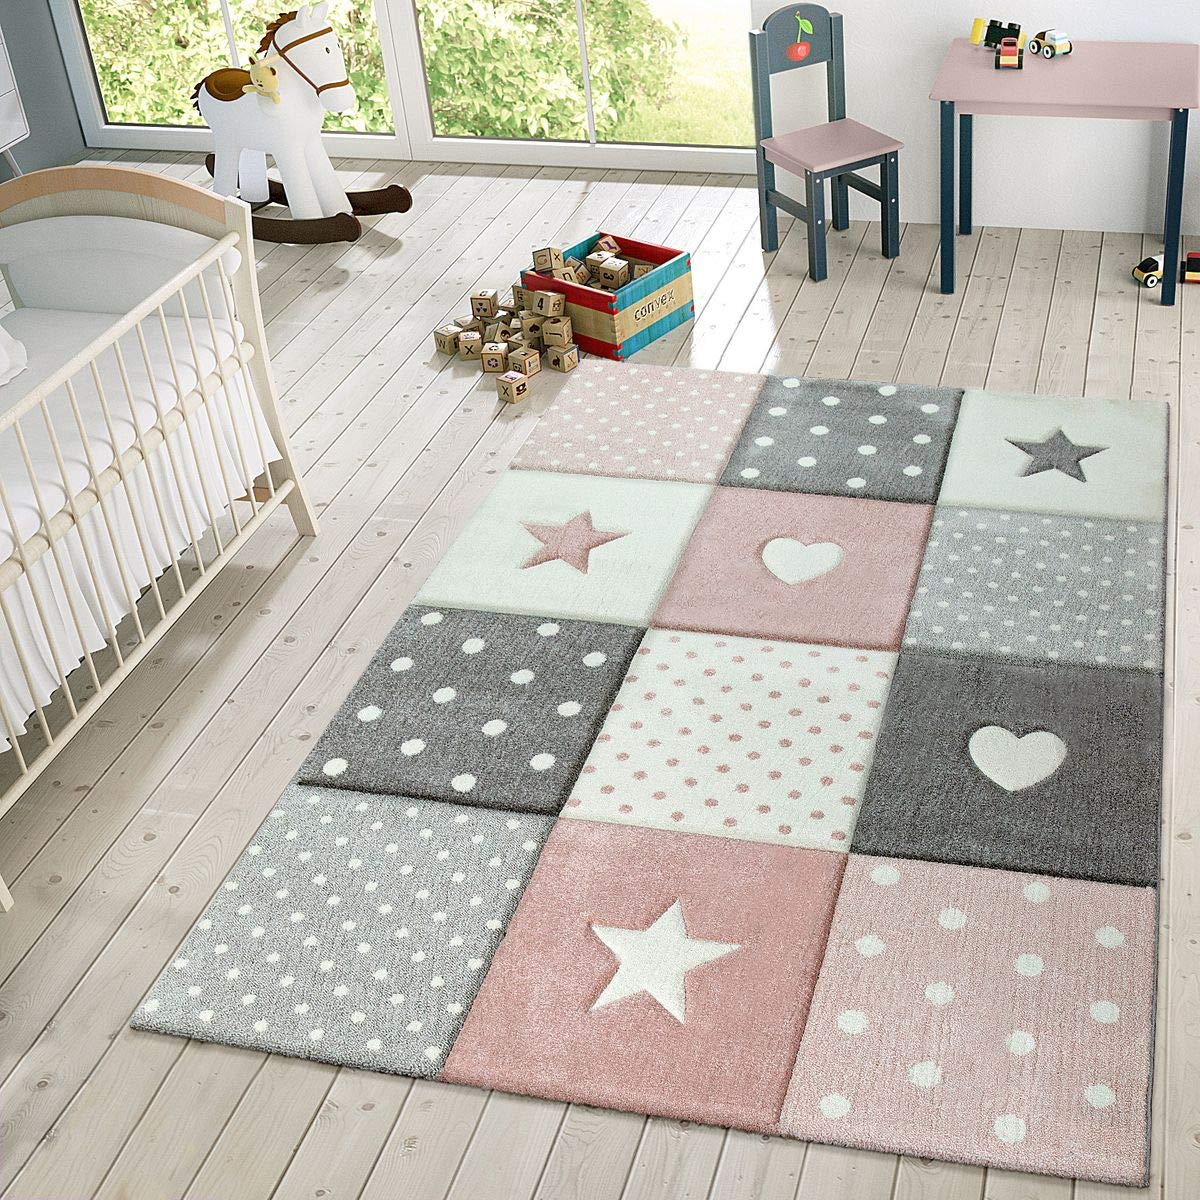 Children's Rug Pastel Colours Checked Dots Hearts Stars White Grey Pink, Size:200x290 cm by Paco Home